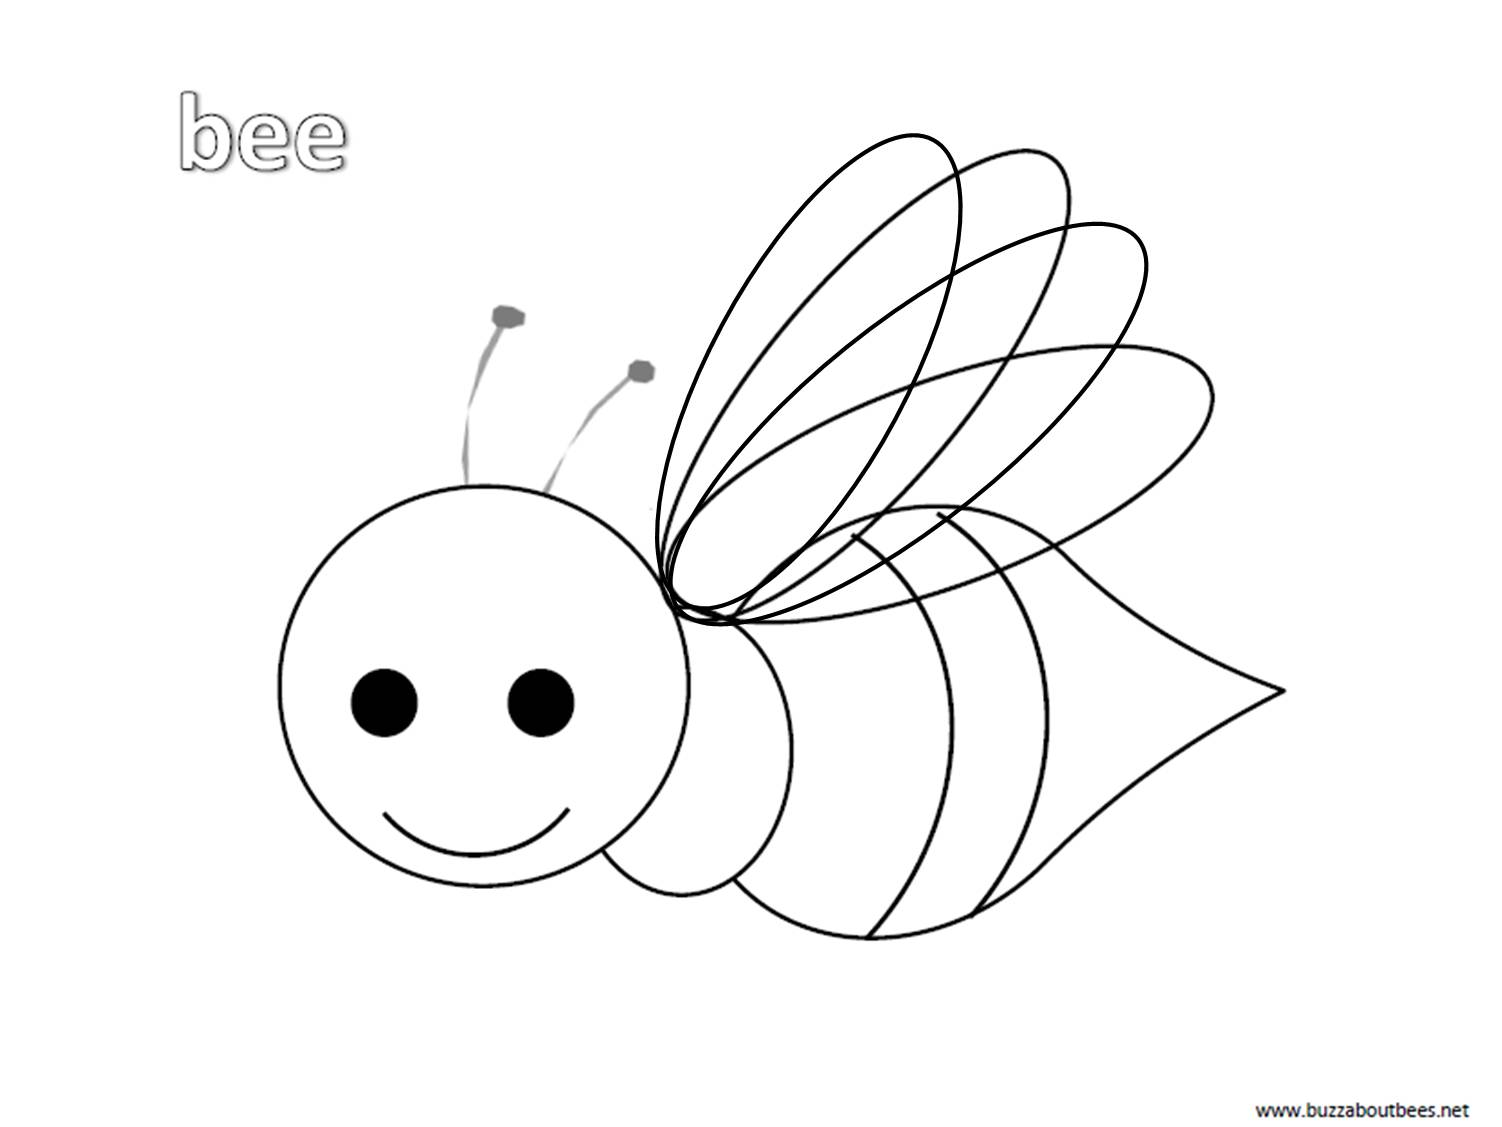 net coloring pages for kids - photo#45